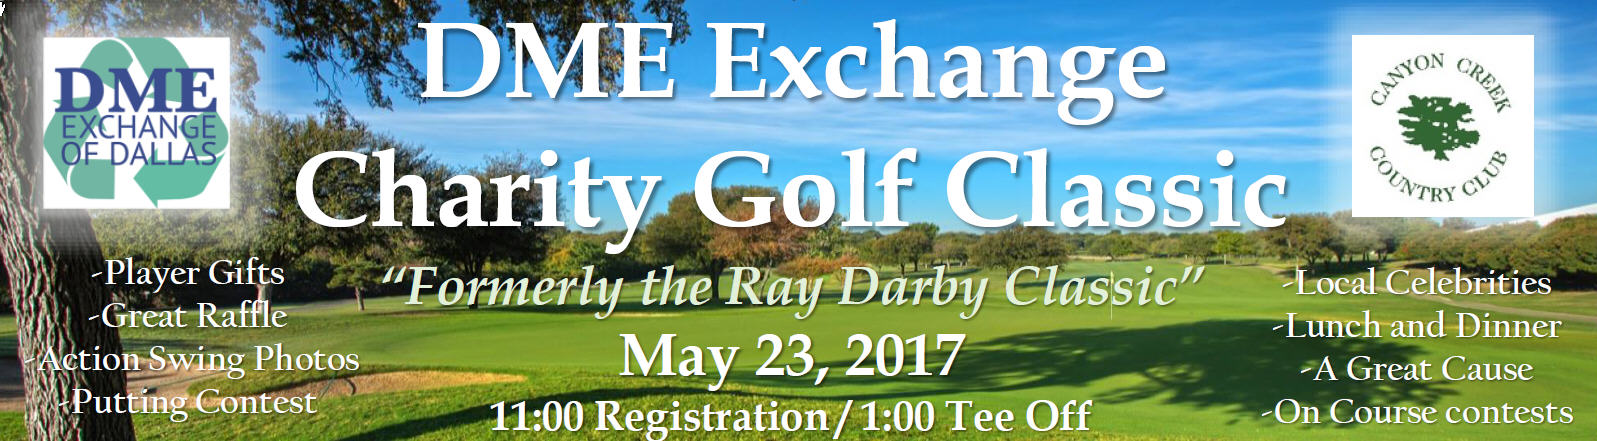 DME Exchange Charity Gold Classic (Formerly Ray Darby Charity Classic)